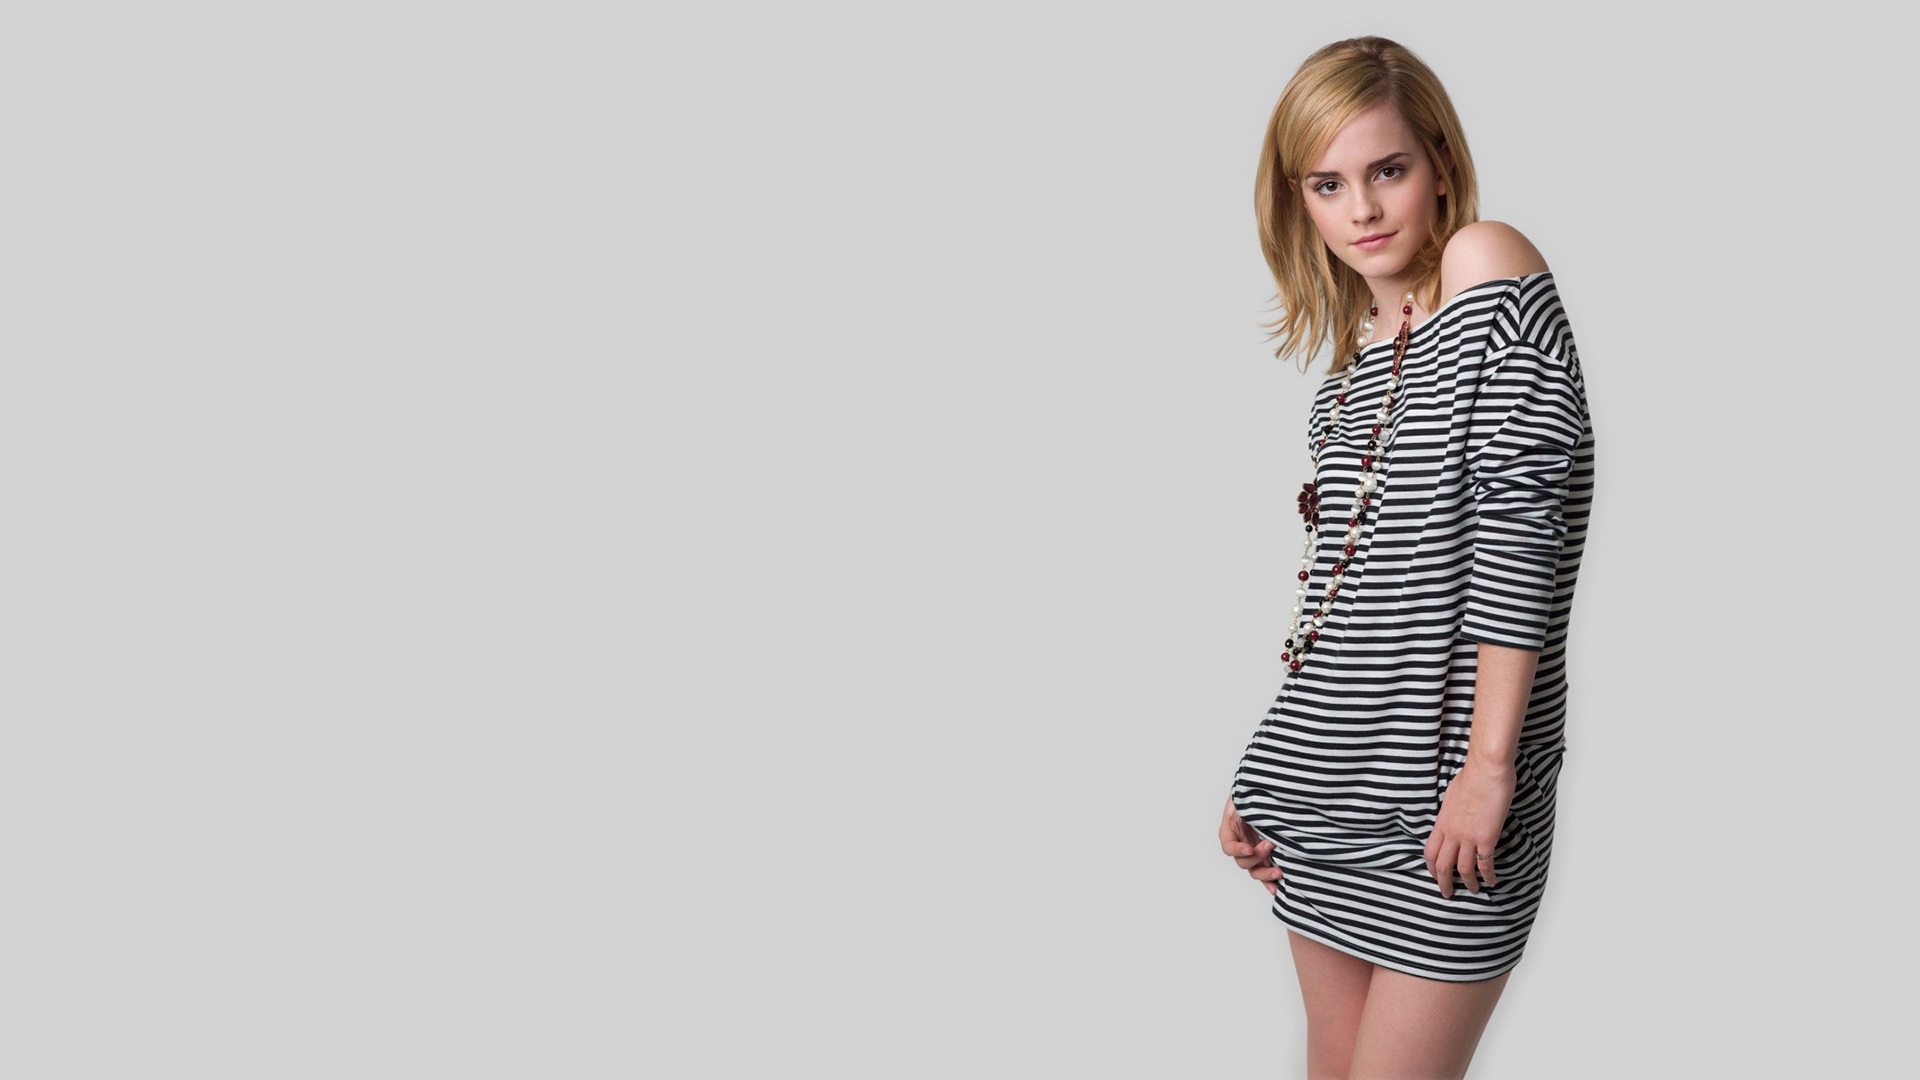 emma watson hd backgrounds, pictures, images